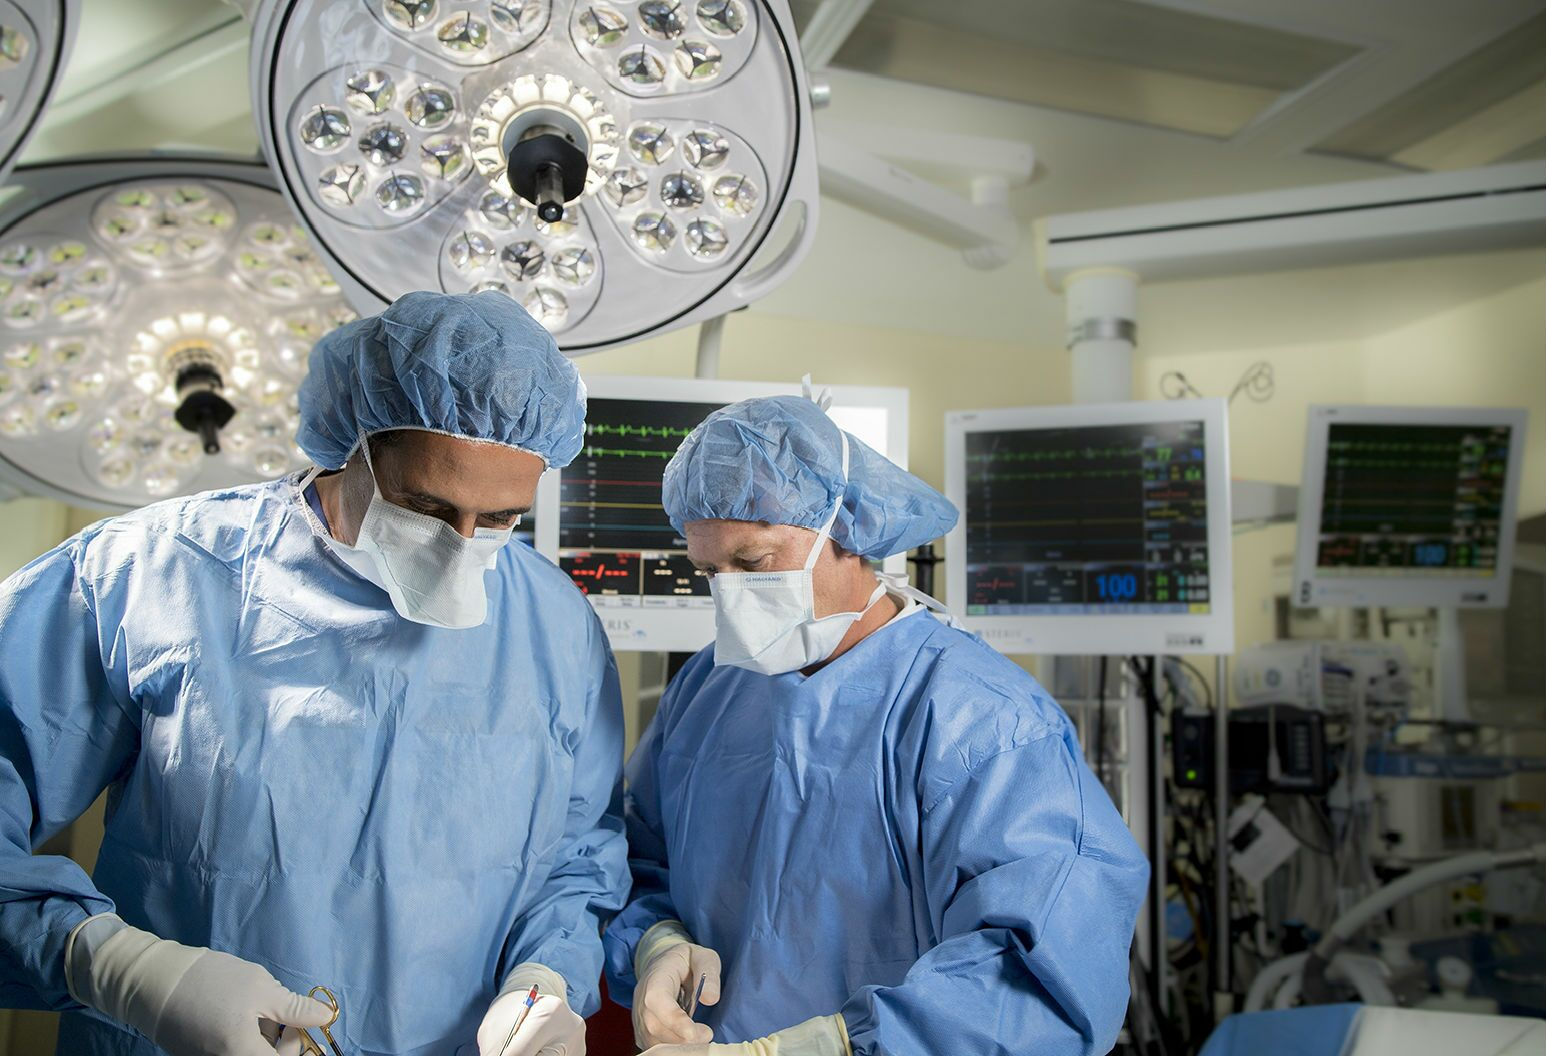 Left: One of New York State's top ranked cardiothoracic surgeons, Southside Hospital's Robert Kalimi, MD, performing surgery.